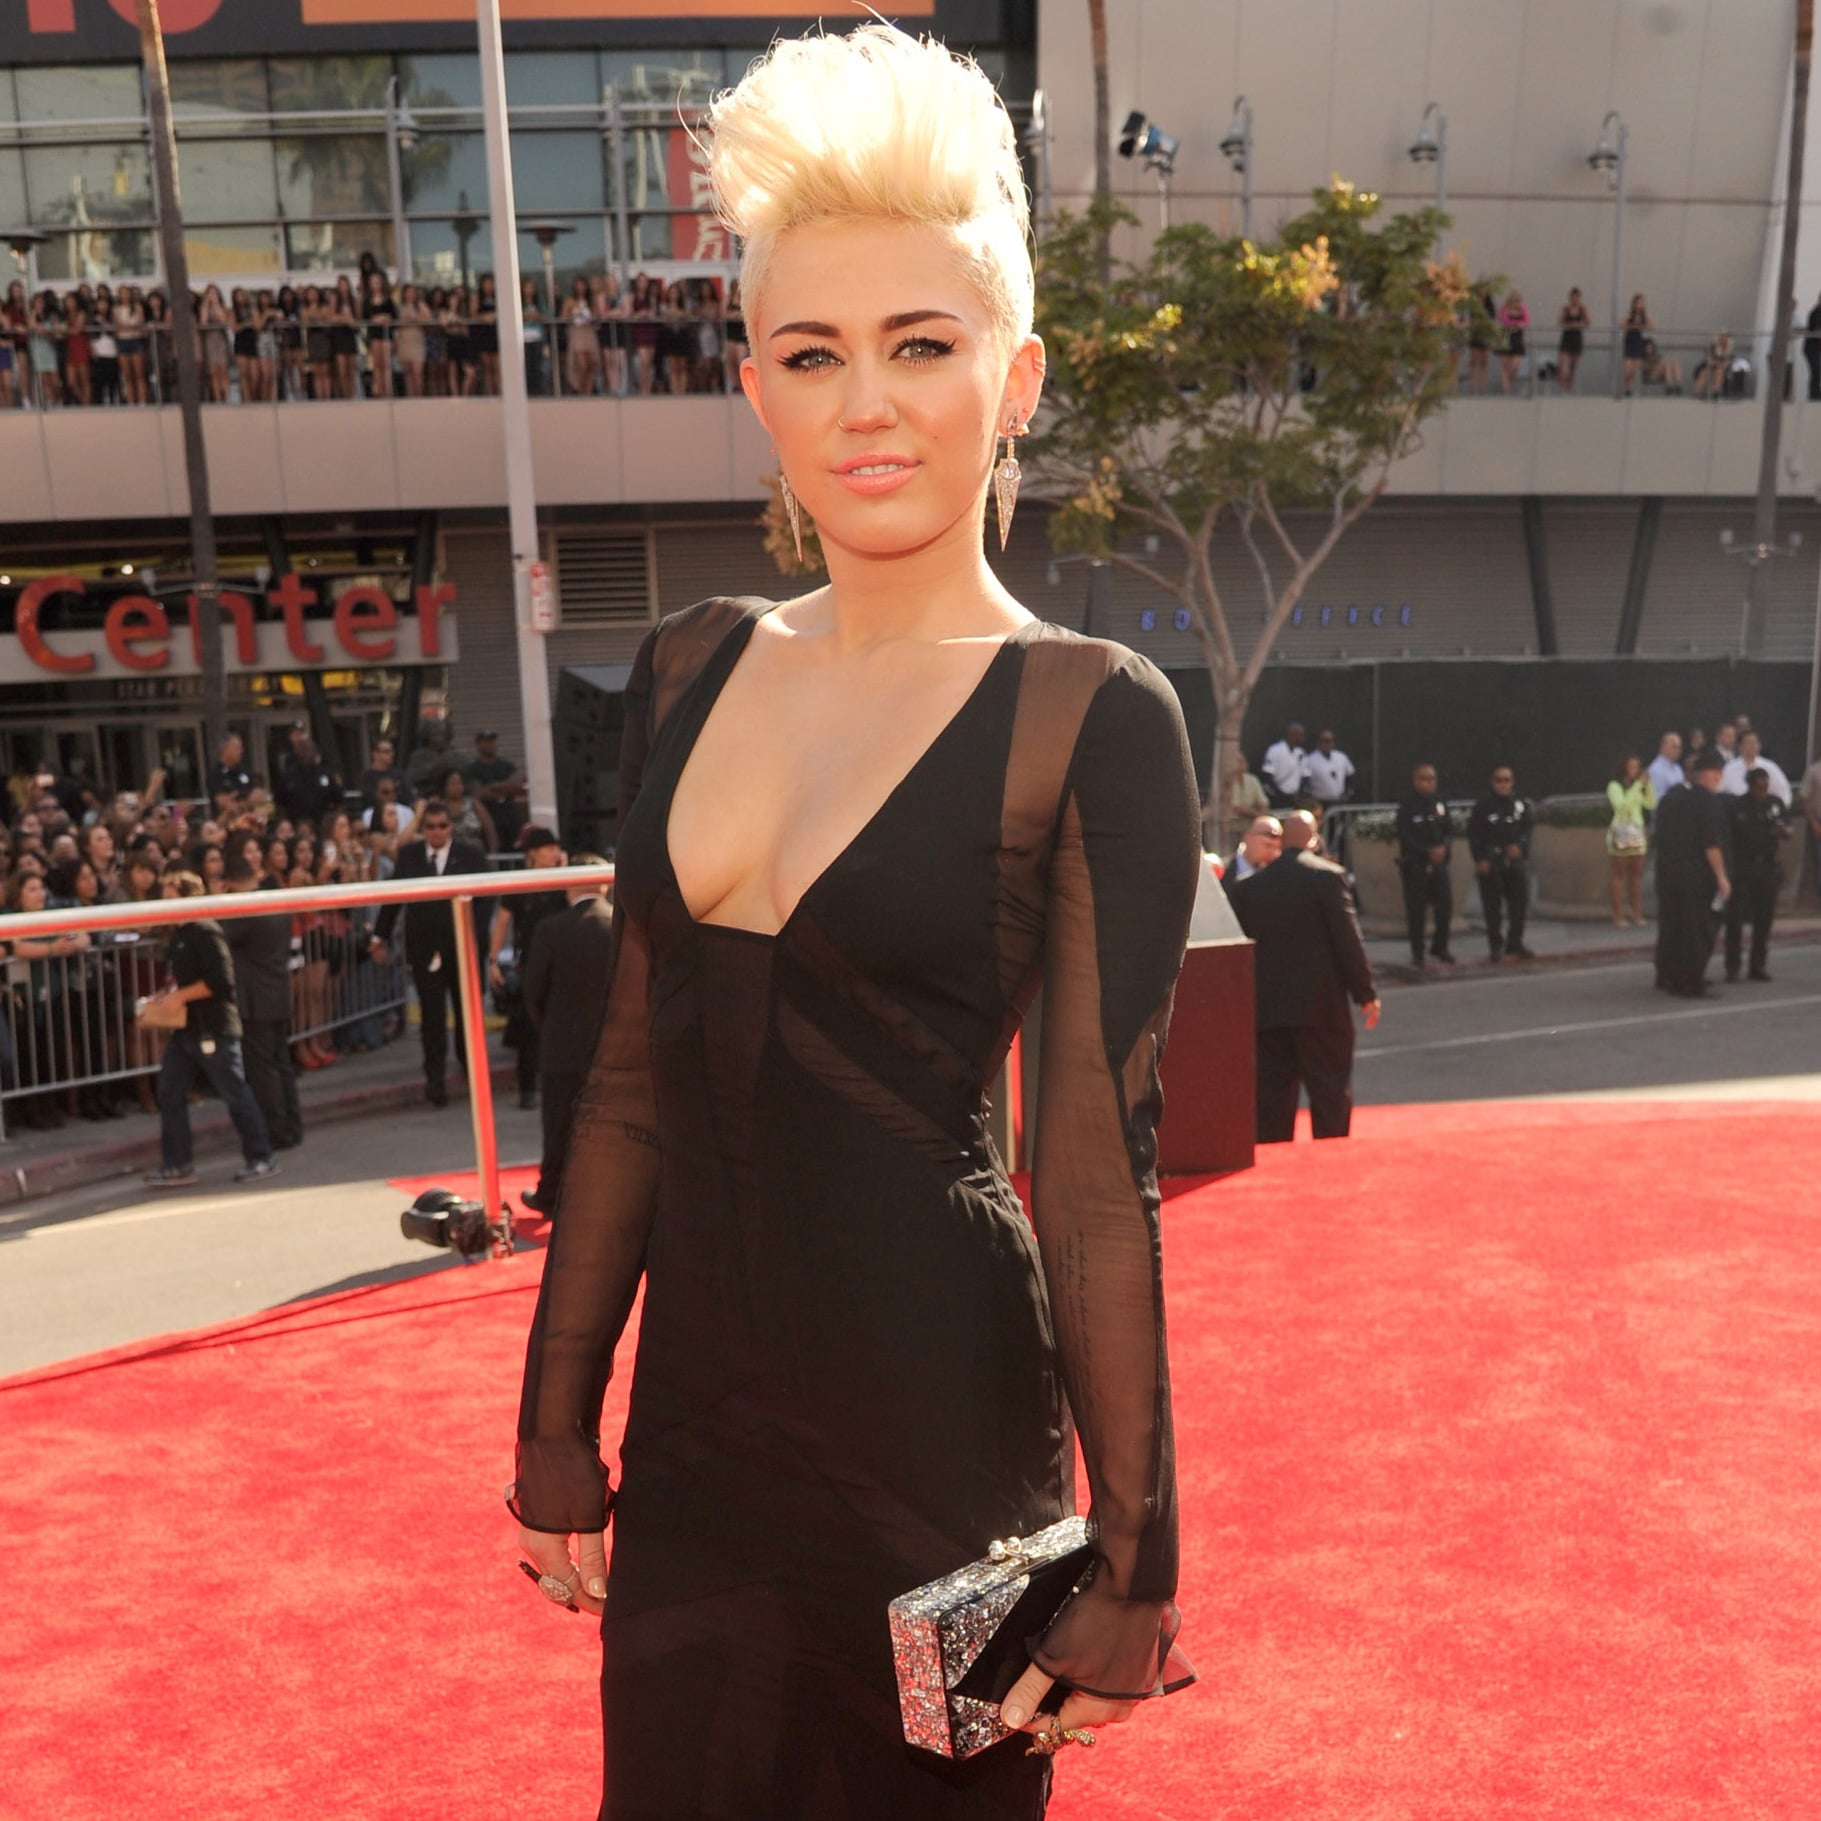 Miley Cyrus in a Black Gown at the MTV VMAs 2012 | POPSUGAR Celebrity